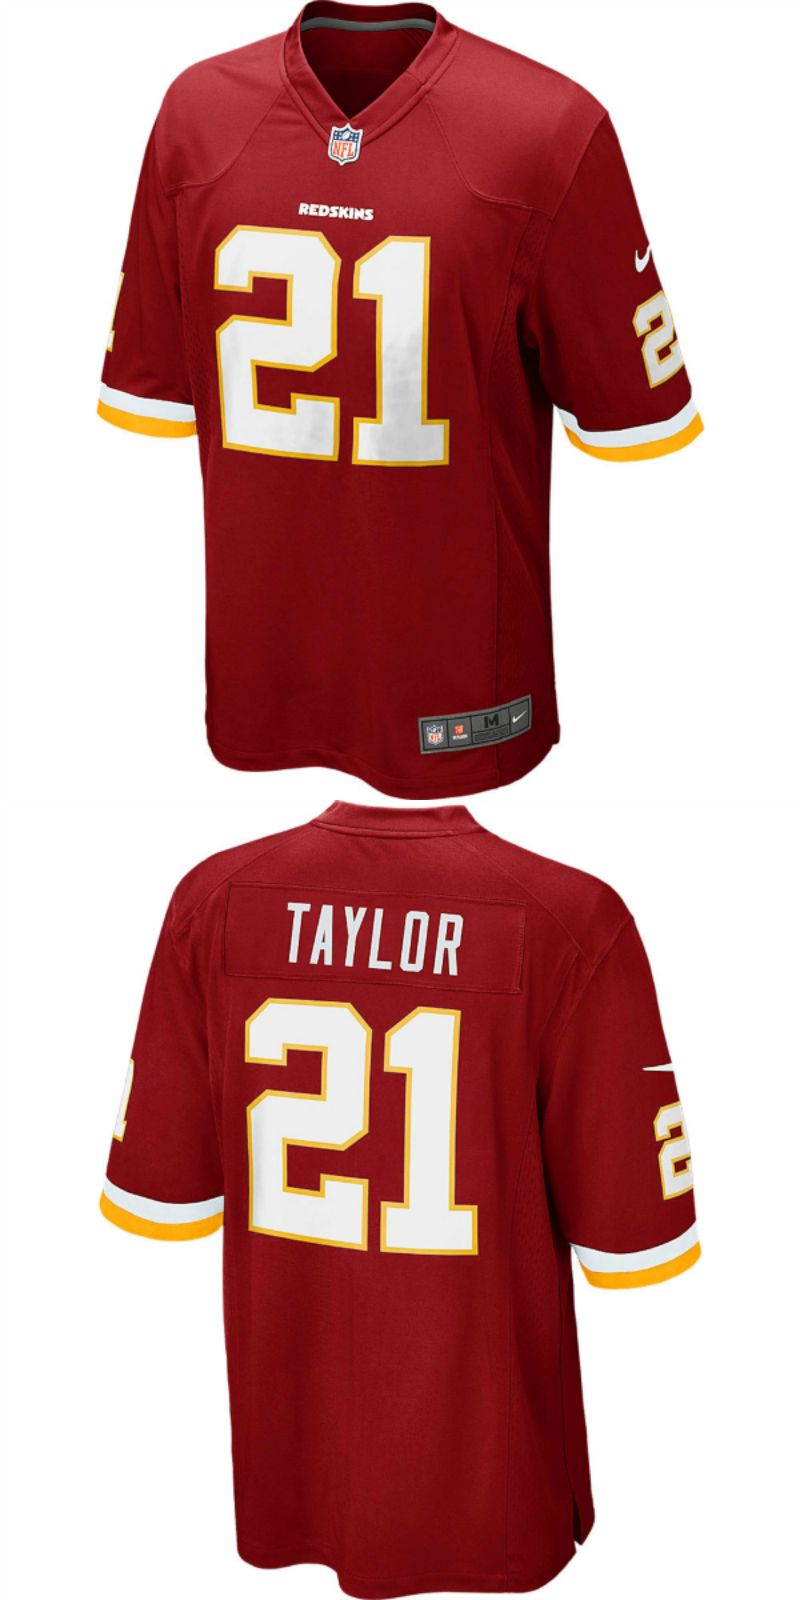 detailed look 6dce9 c67b4 UP TO 70% OFF. Sean Taylor Washington Redskins Nike Retired ...